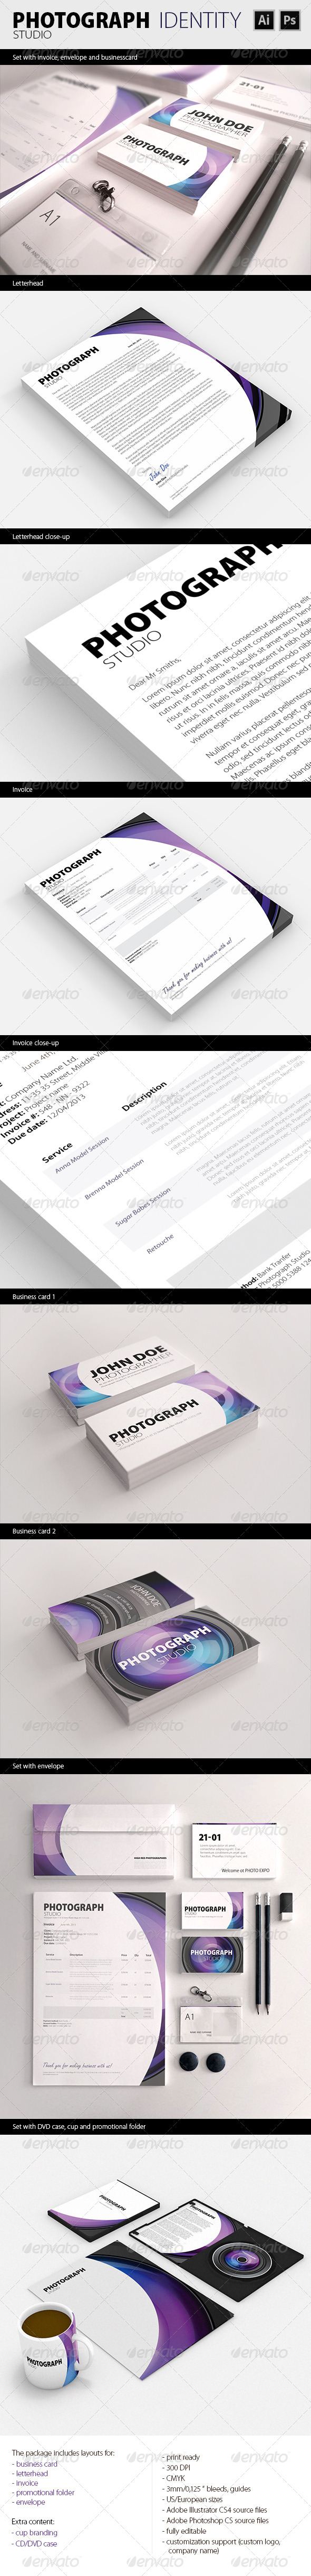 GraphicRiver PhotoGraph Studio Corporate Identity 4999549